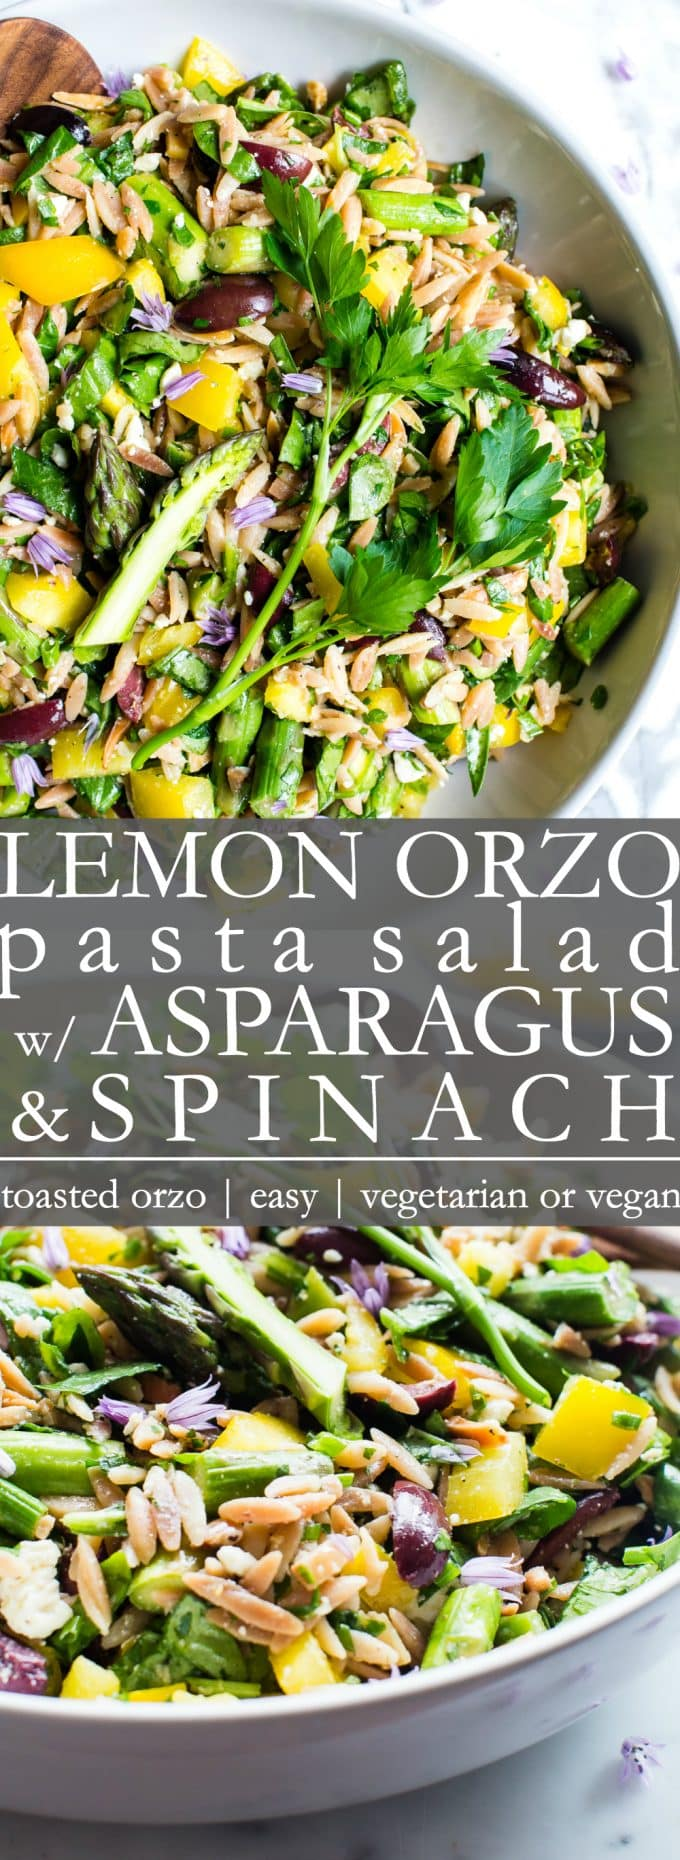 Lemon Orzo Pasta Salad with Asparagus, Spinach and Feta